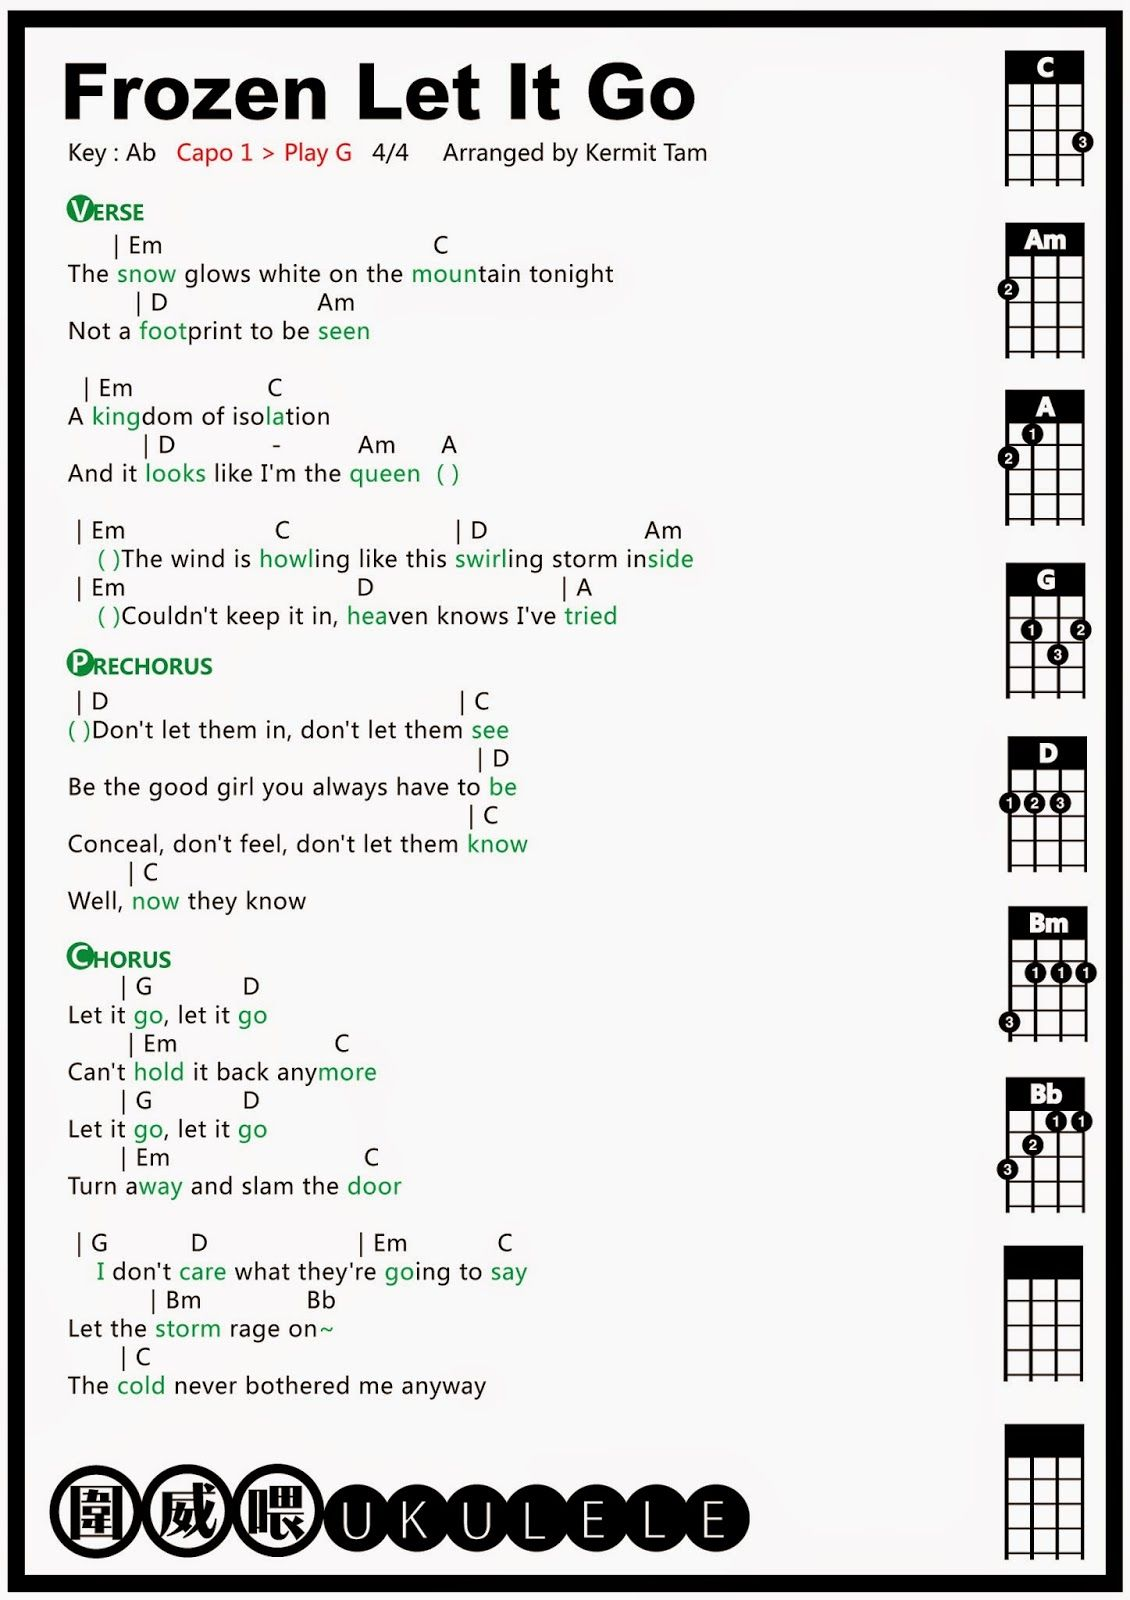 Frozen Libre Soy Letra 圍威喂 Ukulele Frozen Let It Go Ukulele Tab Ukulele